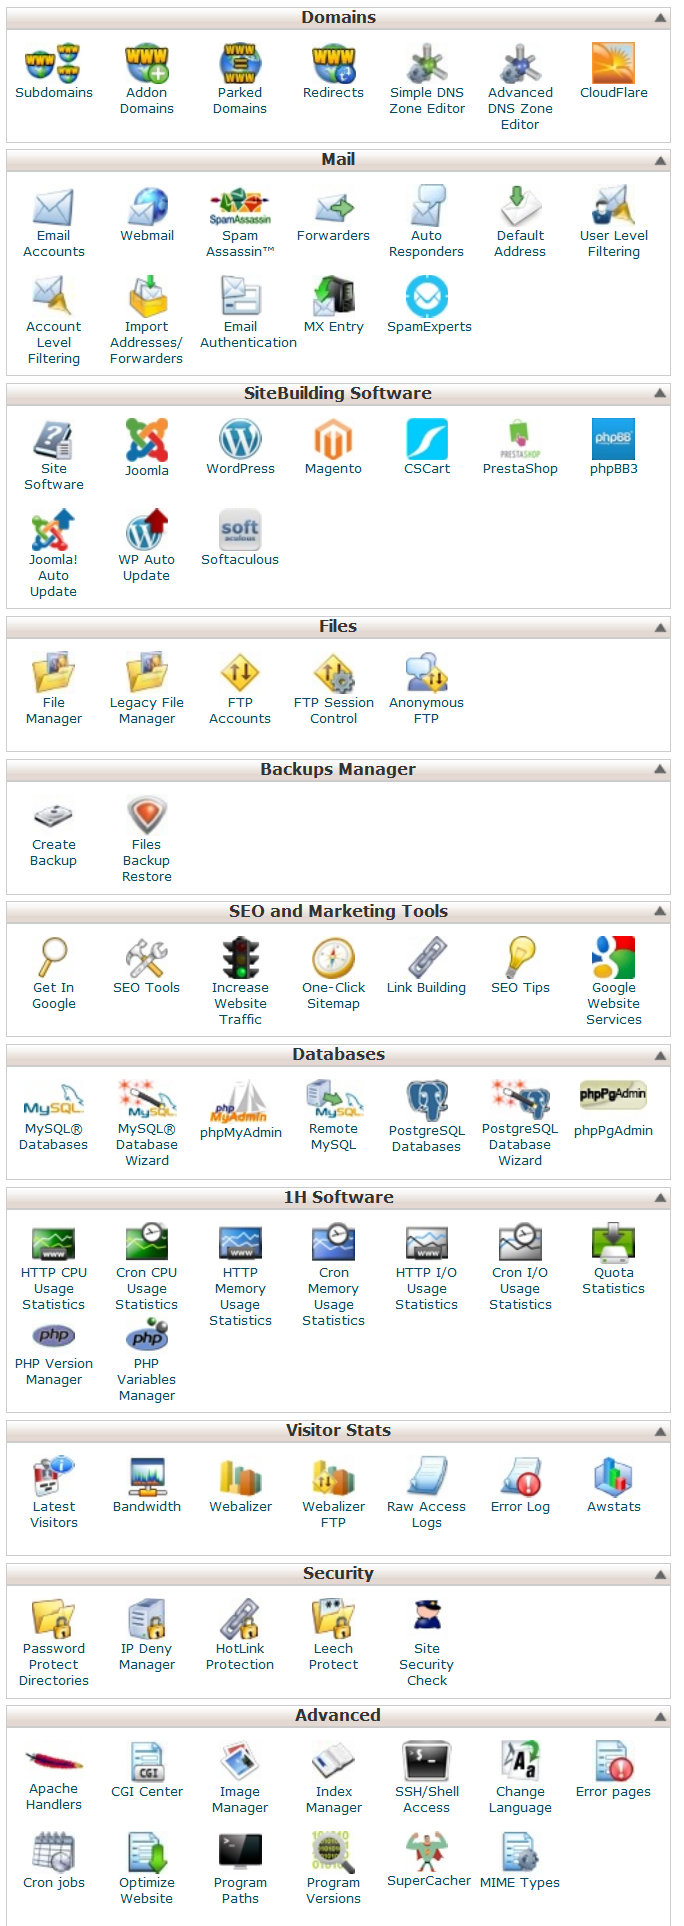 cpanel makes changes easy